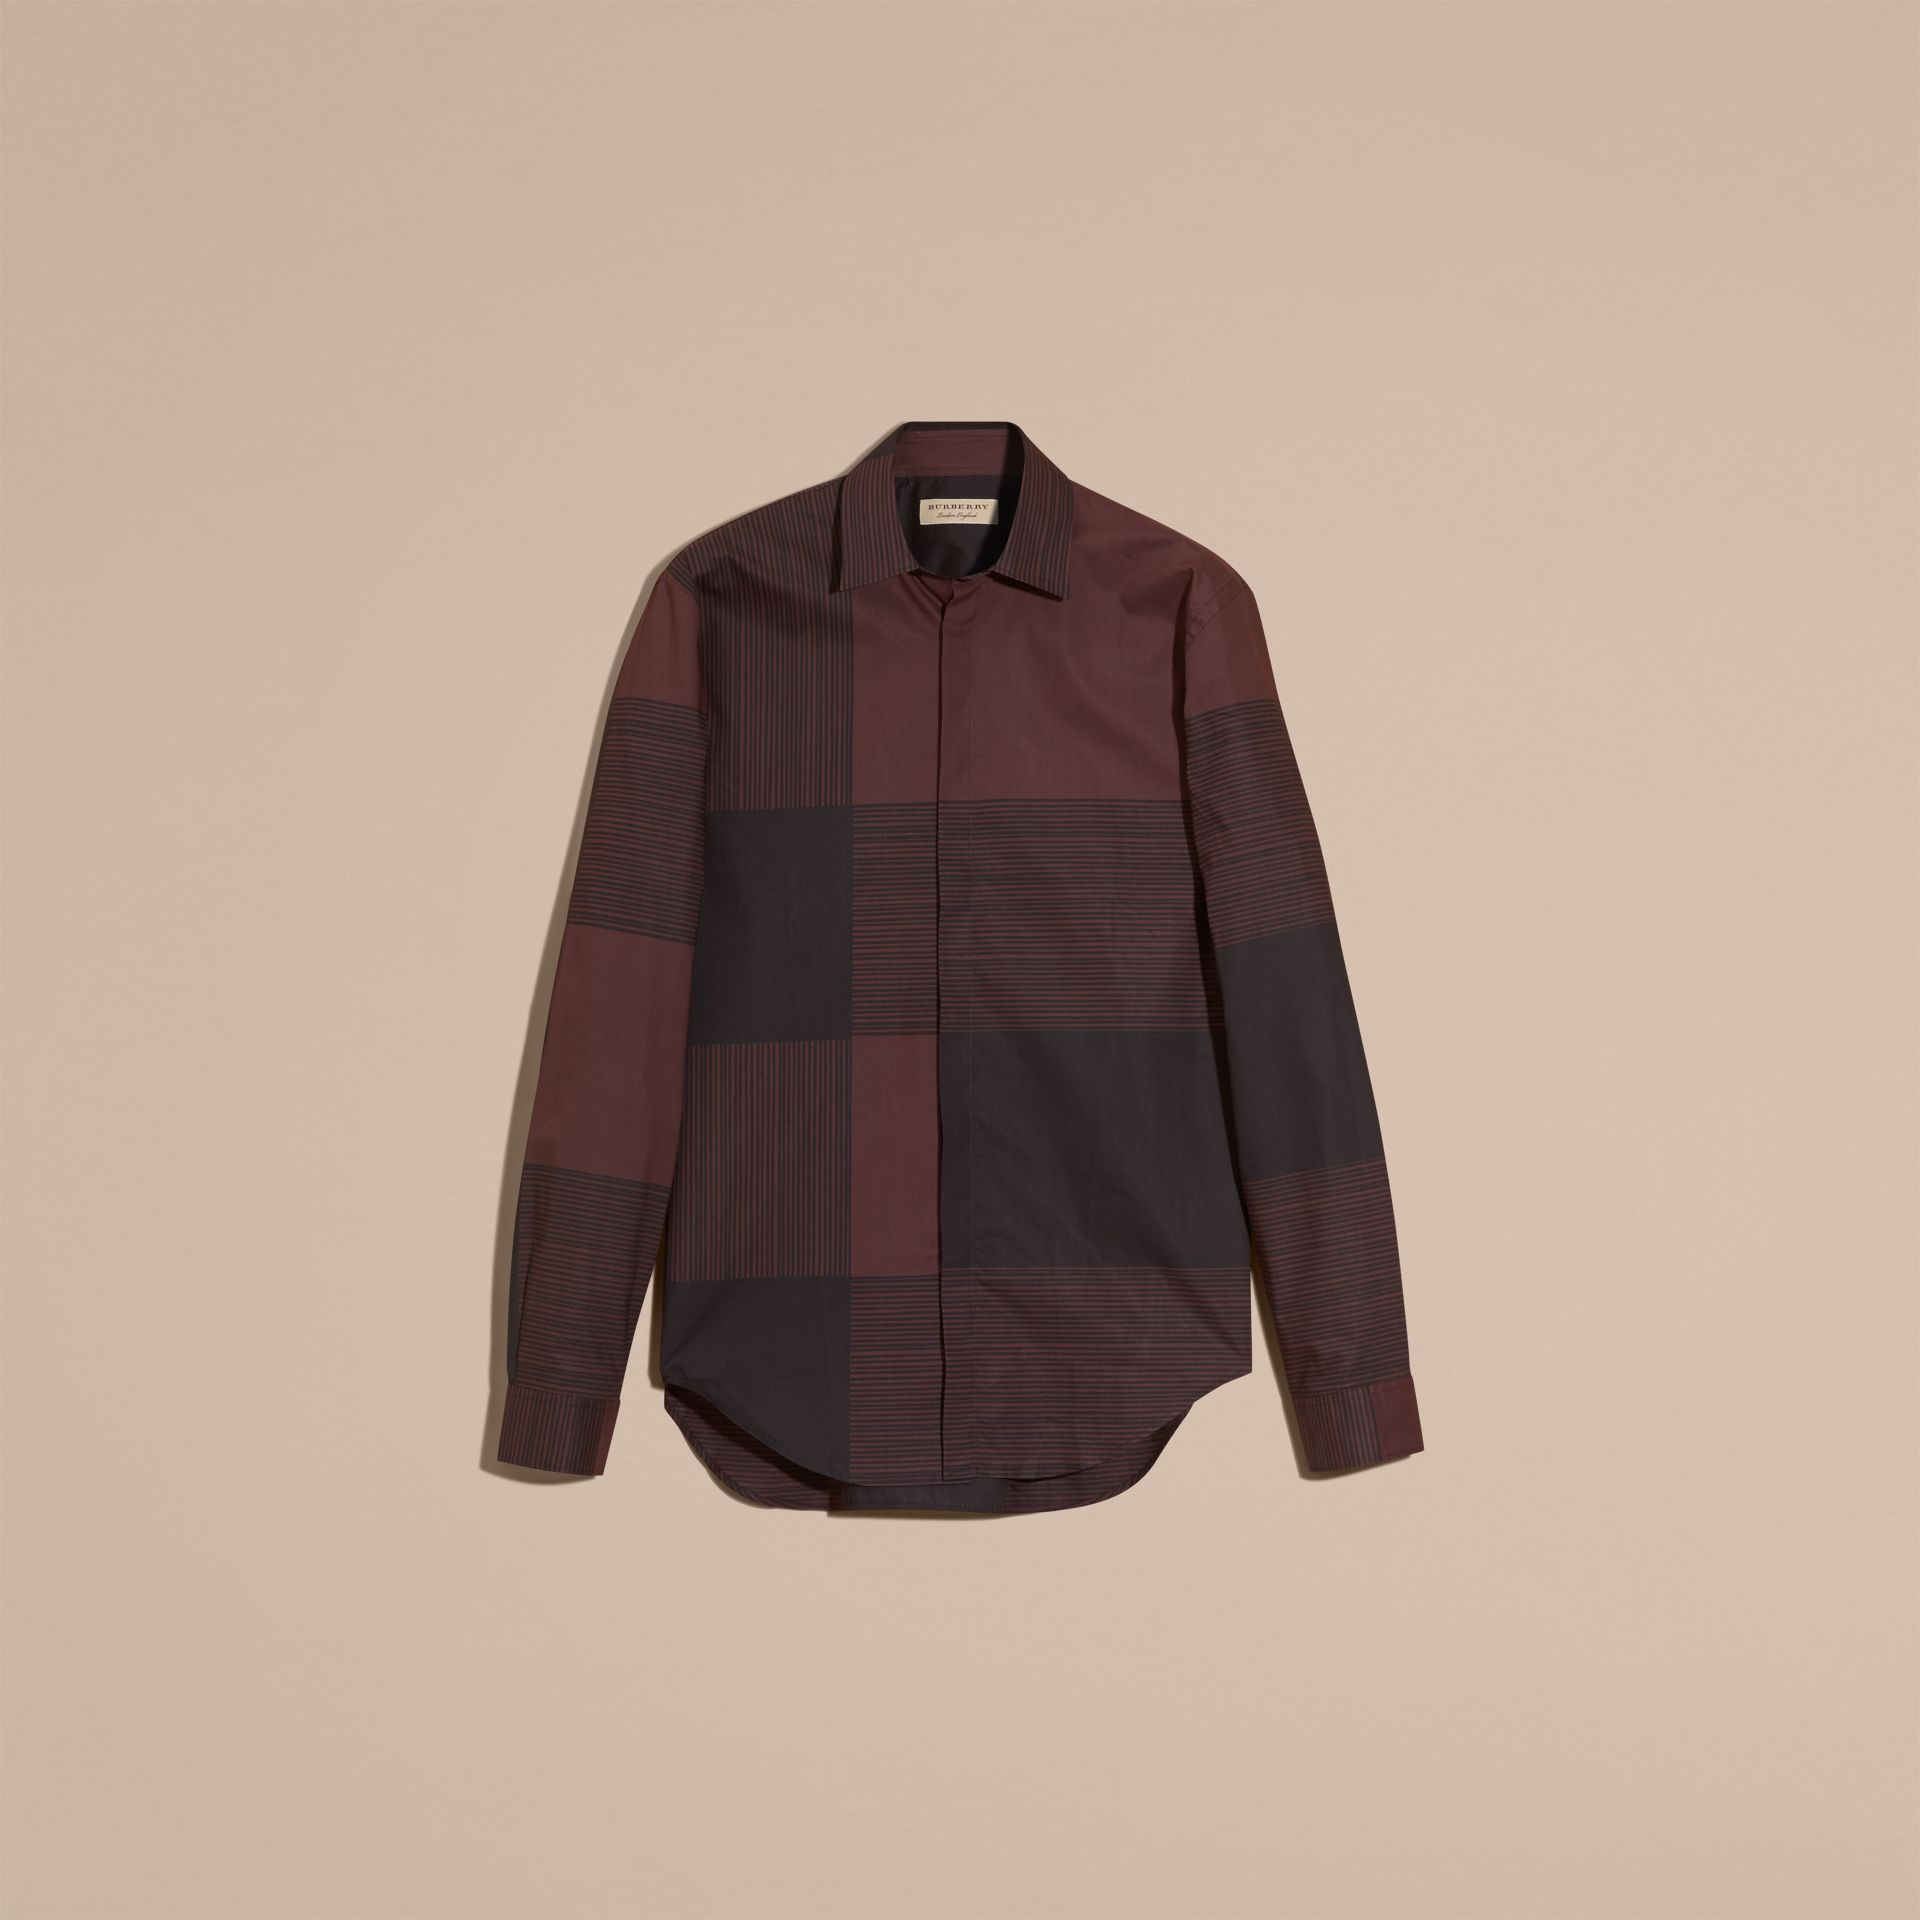 Burgundy Check Cotton Shirt Burgundy - gallery image 4